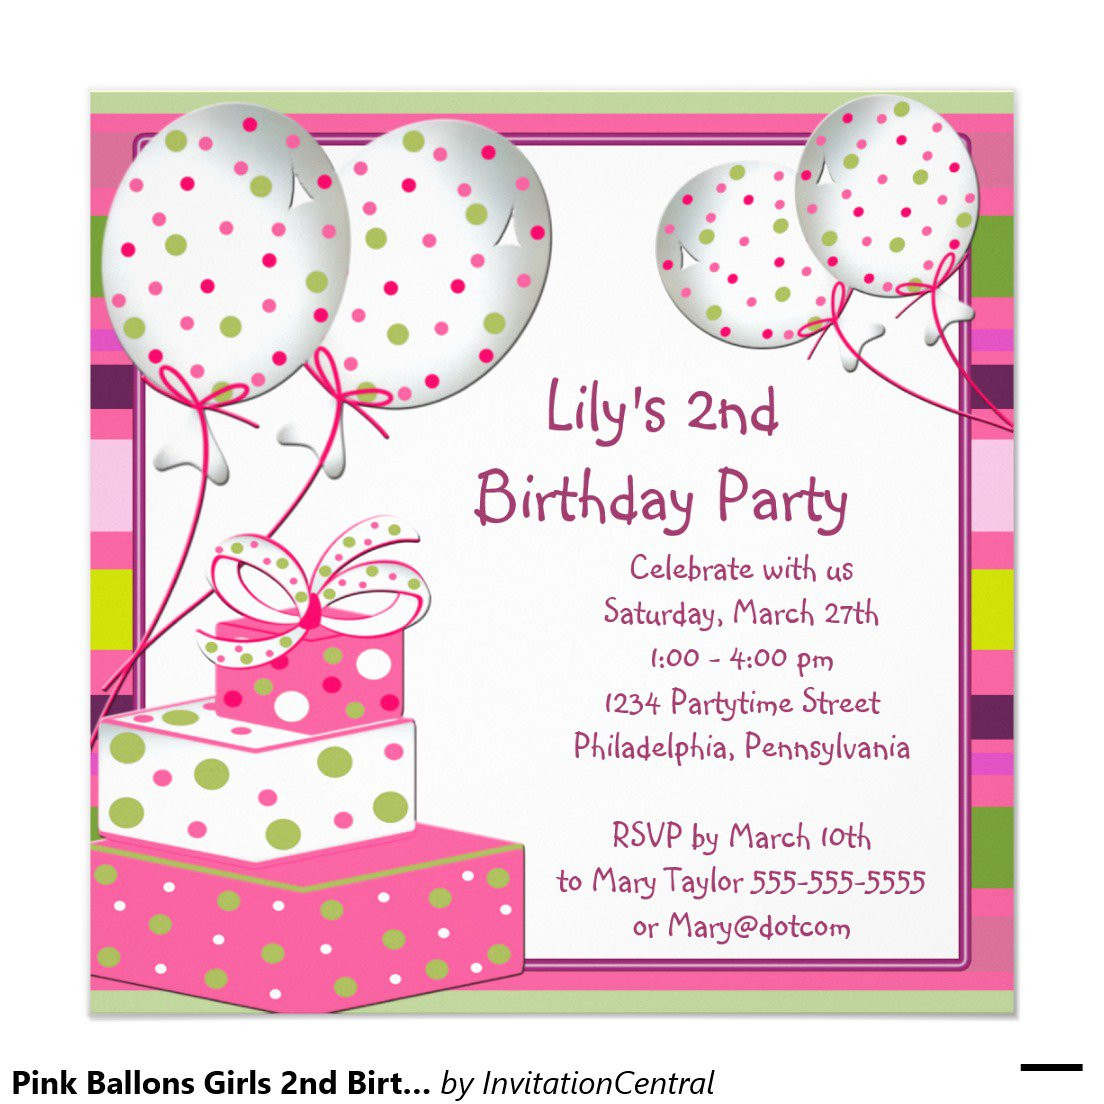 Best ideas about Invitation For Birthday Party . Save or Pin Birthday Party Invitation Card Now.